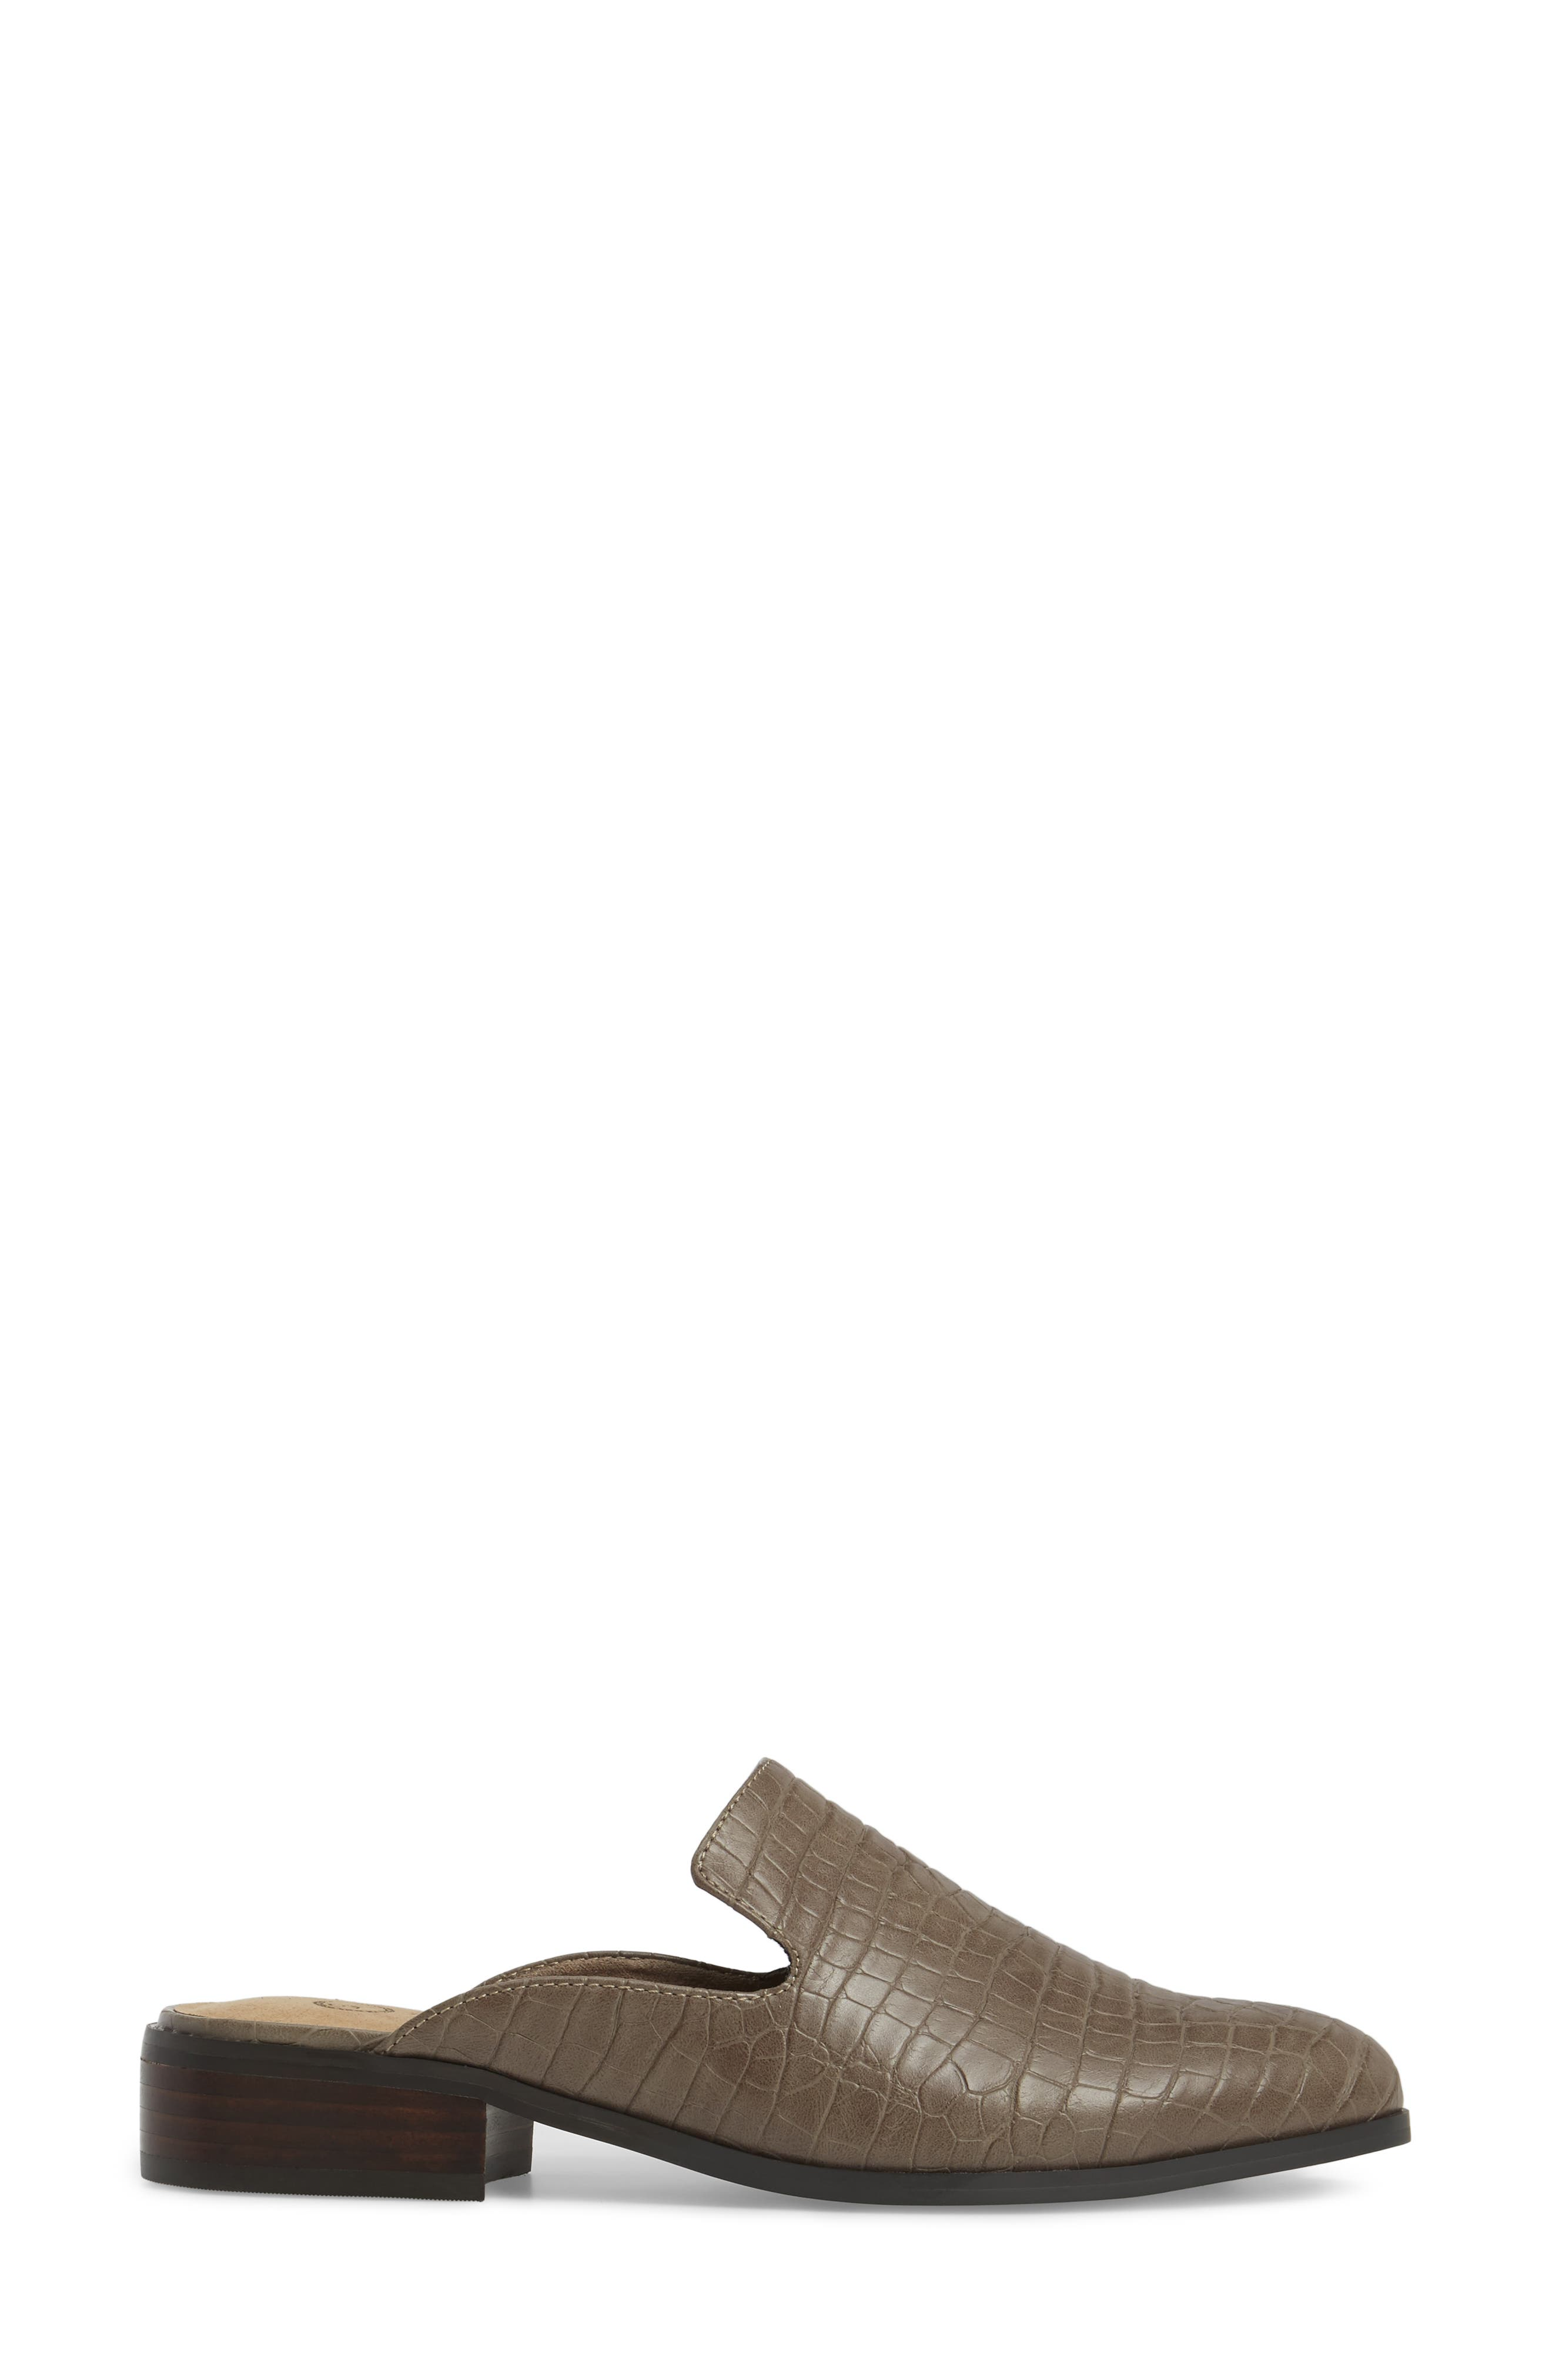 Briar II Loafer Mule,                             Alternate thumbnail 15, color,